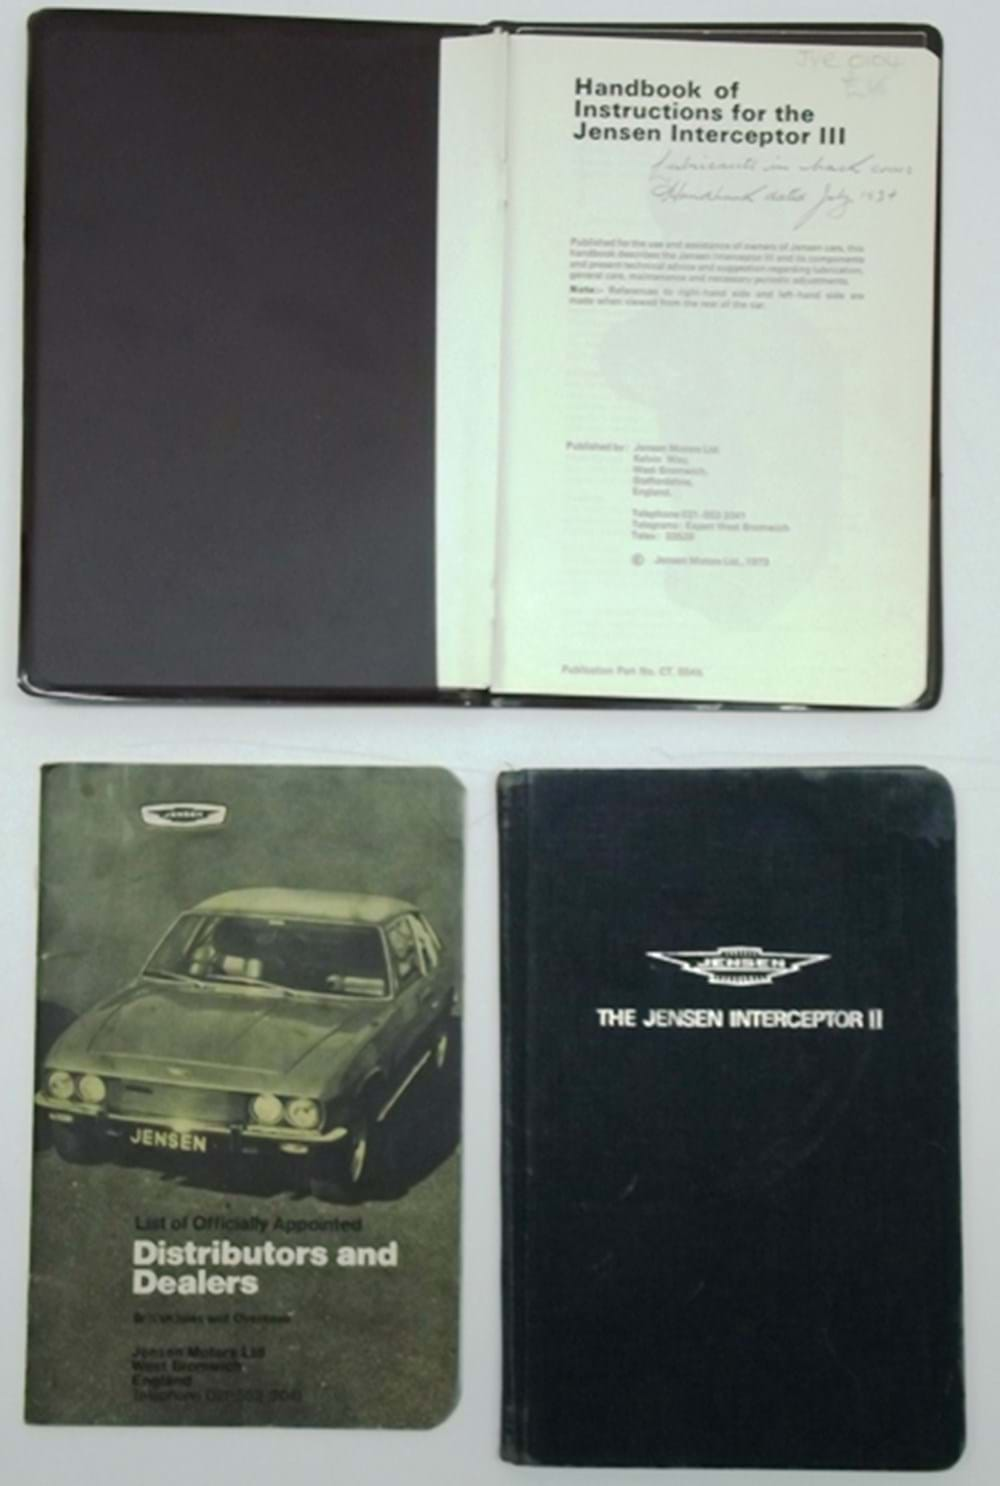 Lot 116 - Jensen hand-book